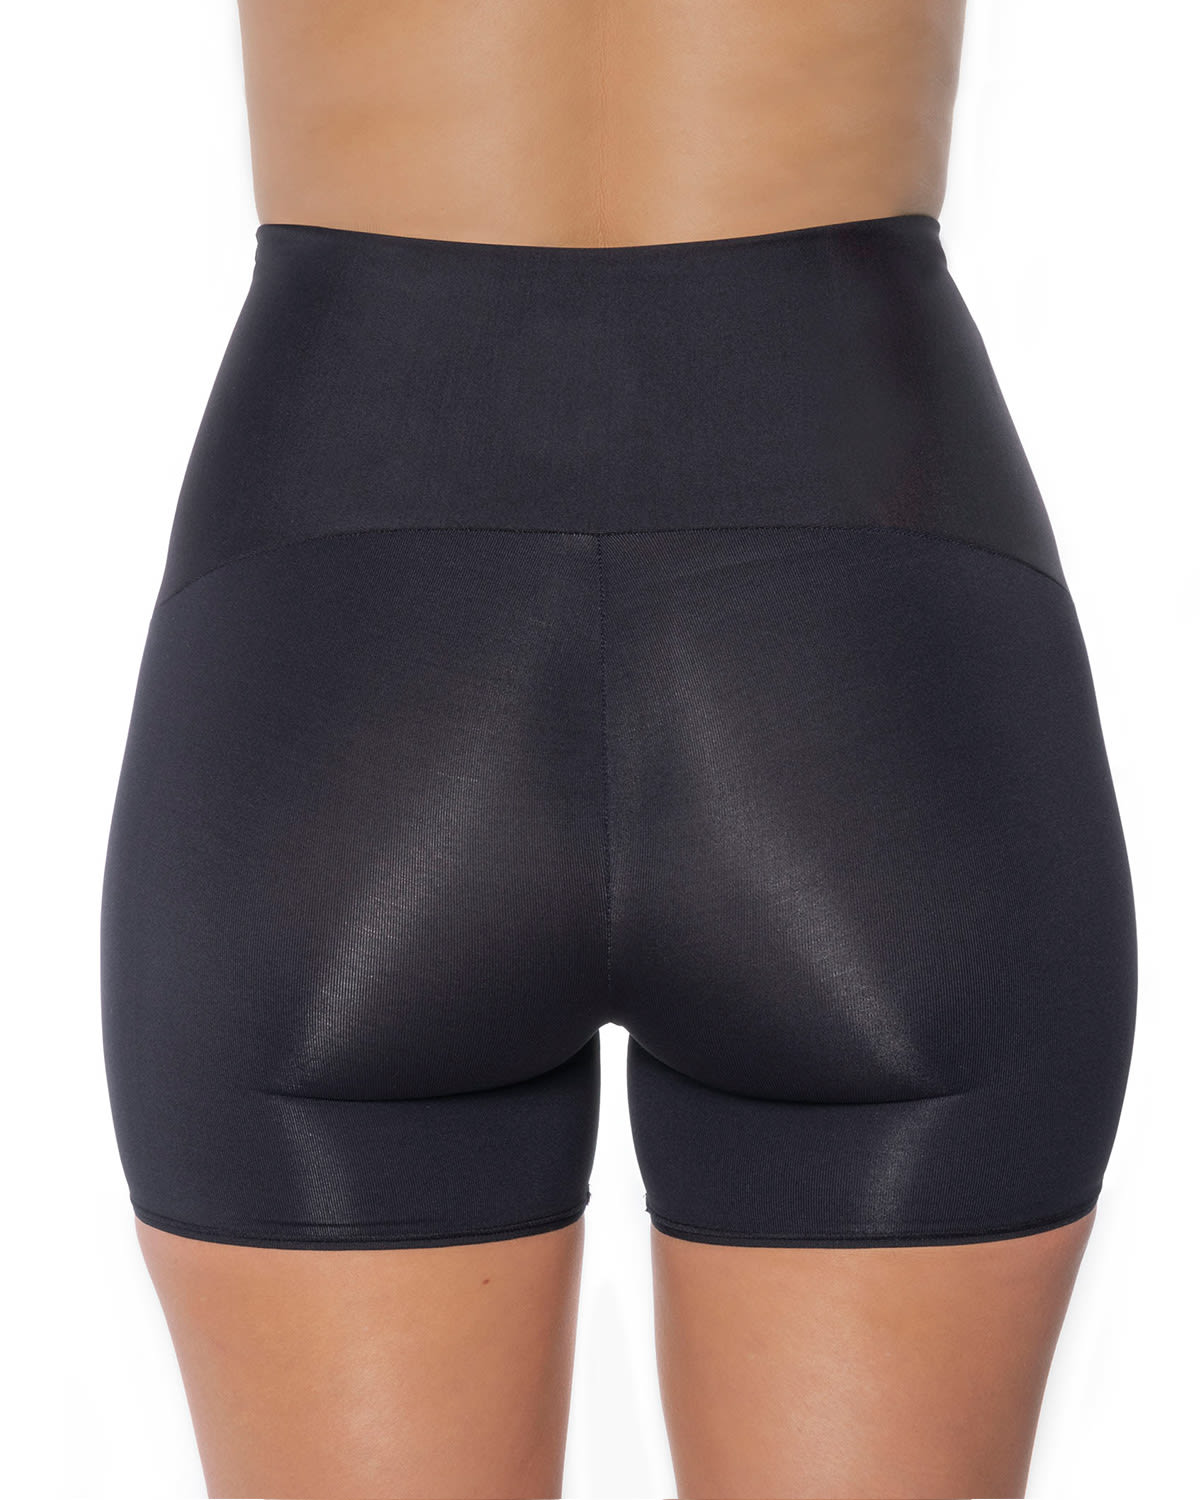 2c5f4271b ActiveLife Power Forward Moderate Compression High-Waisted Shaper Short